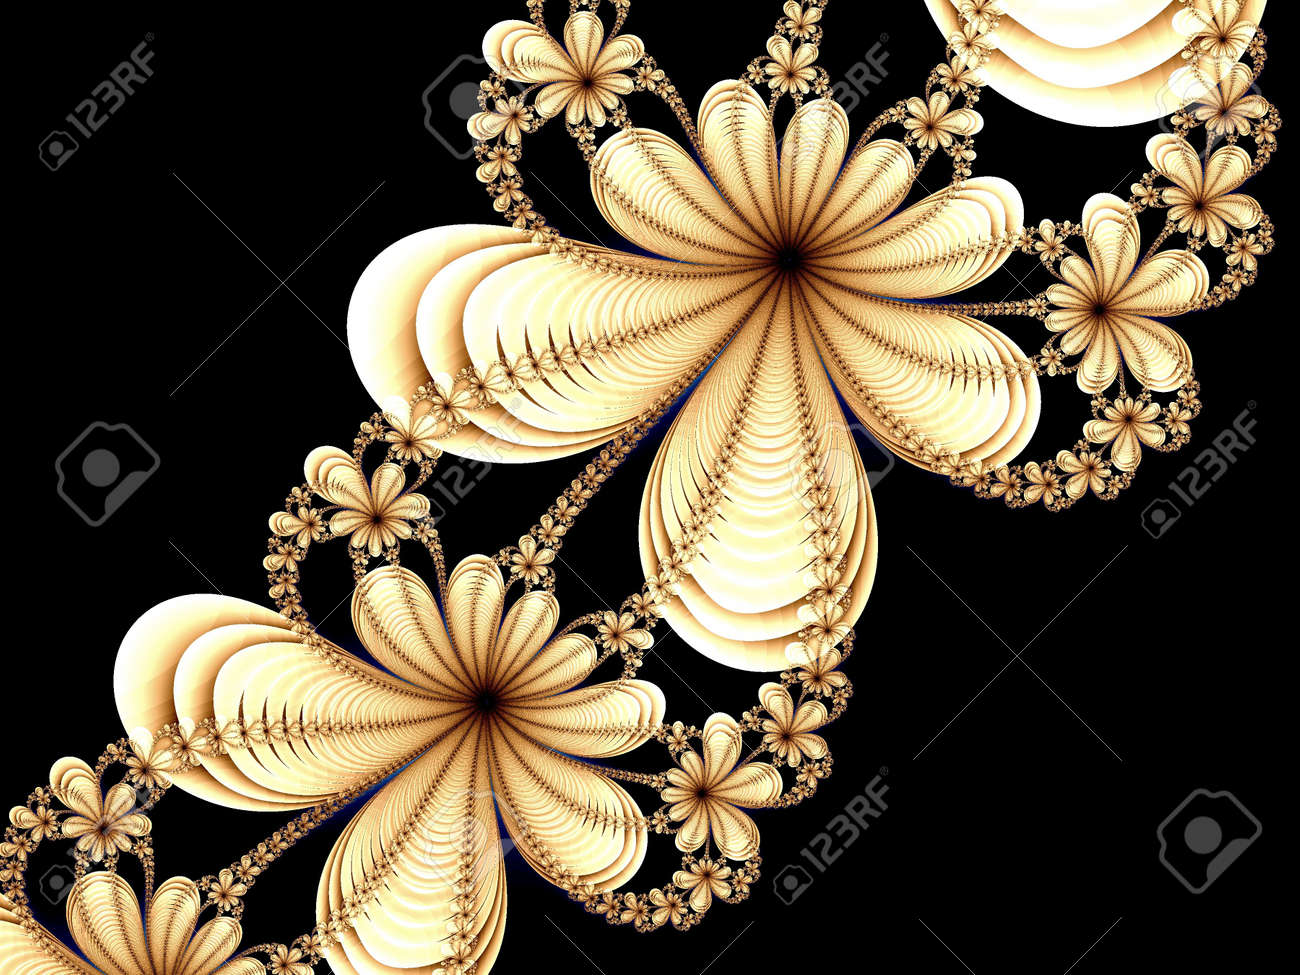 abstract design Stock Photo - 2773276